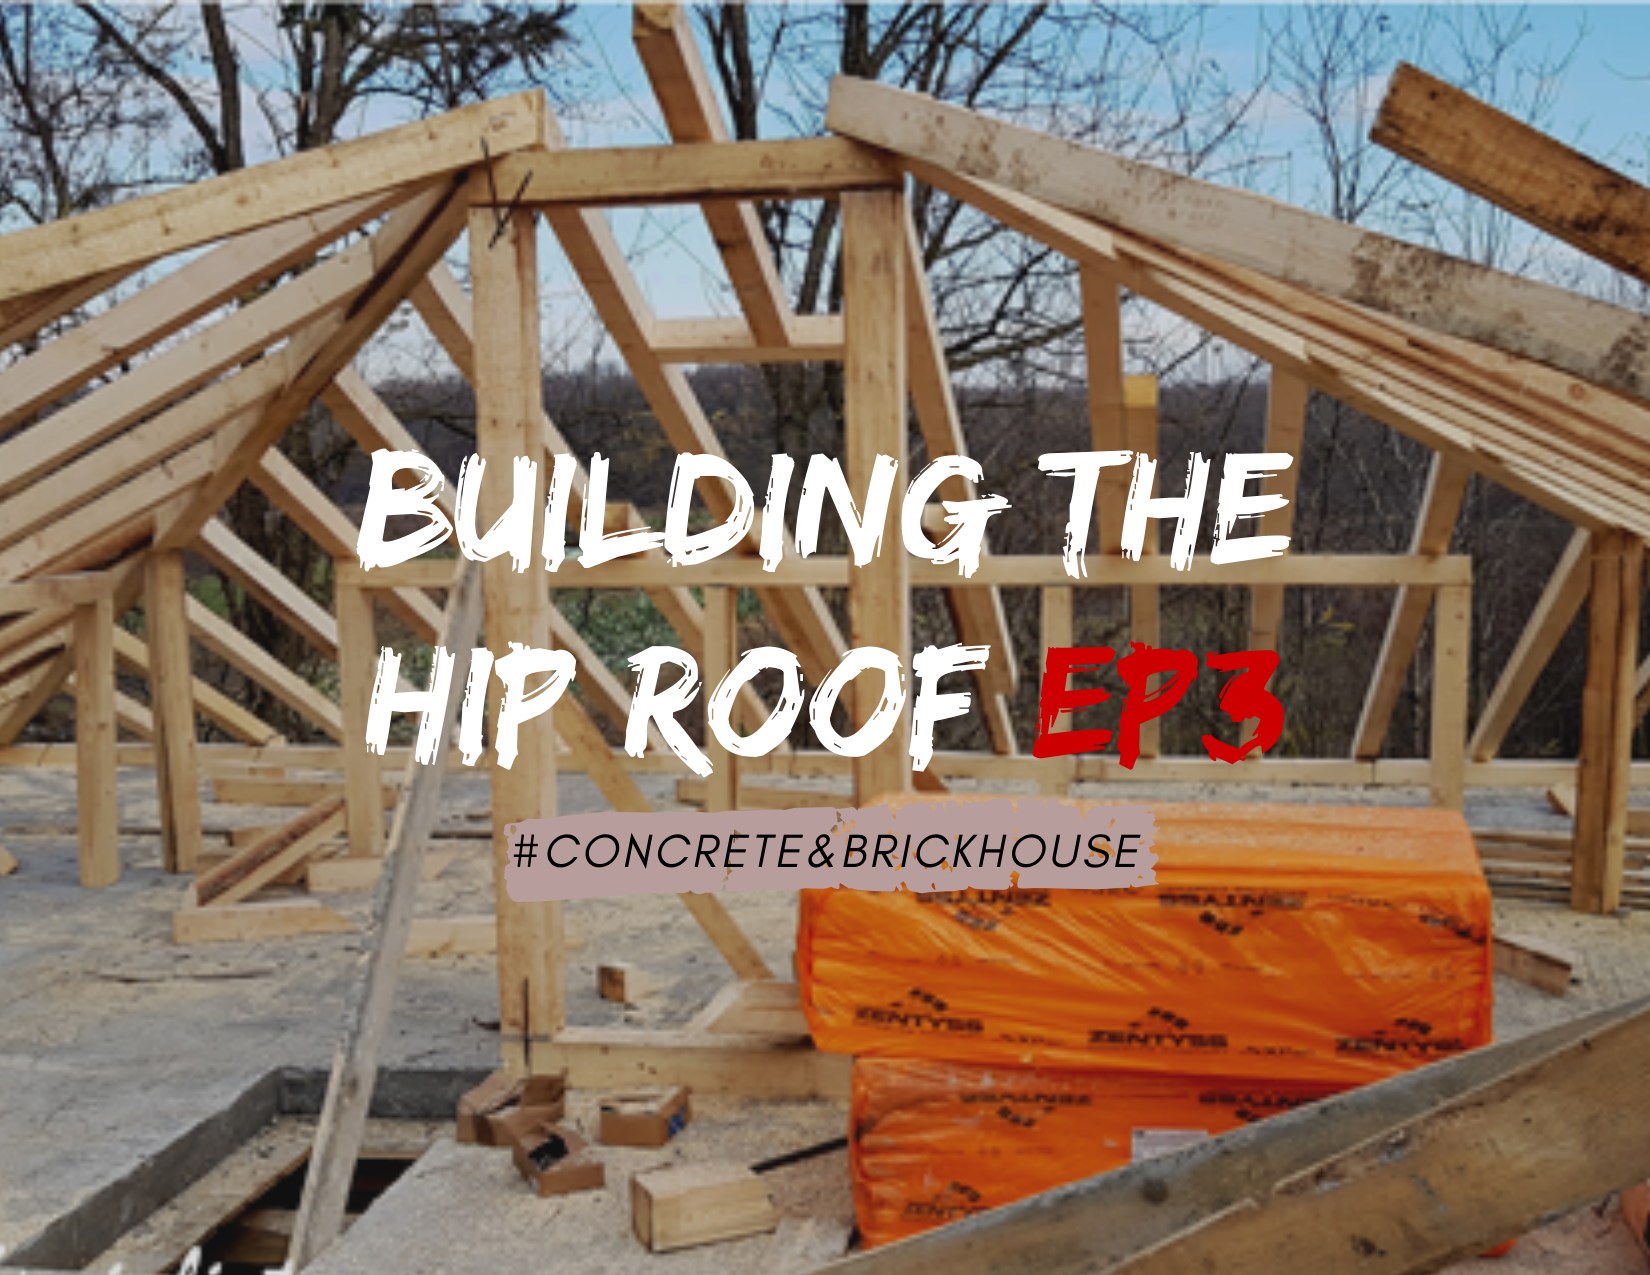 Concrete And Brick House How To Build A Hip Roof Howtospecialist How To Build Step By Step Diy Plans